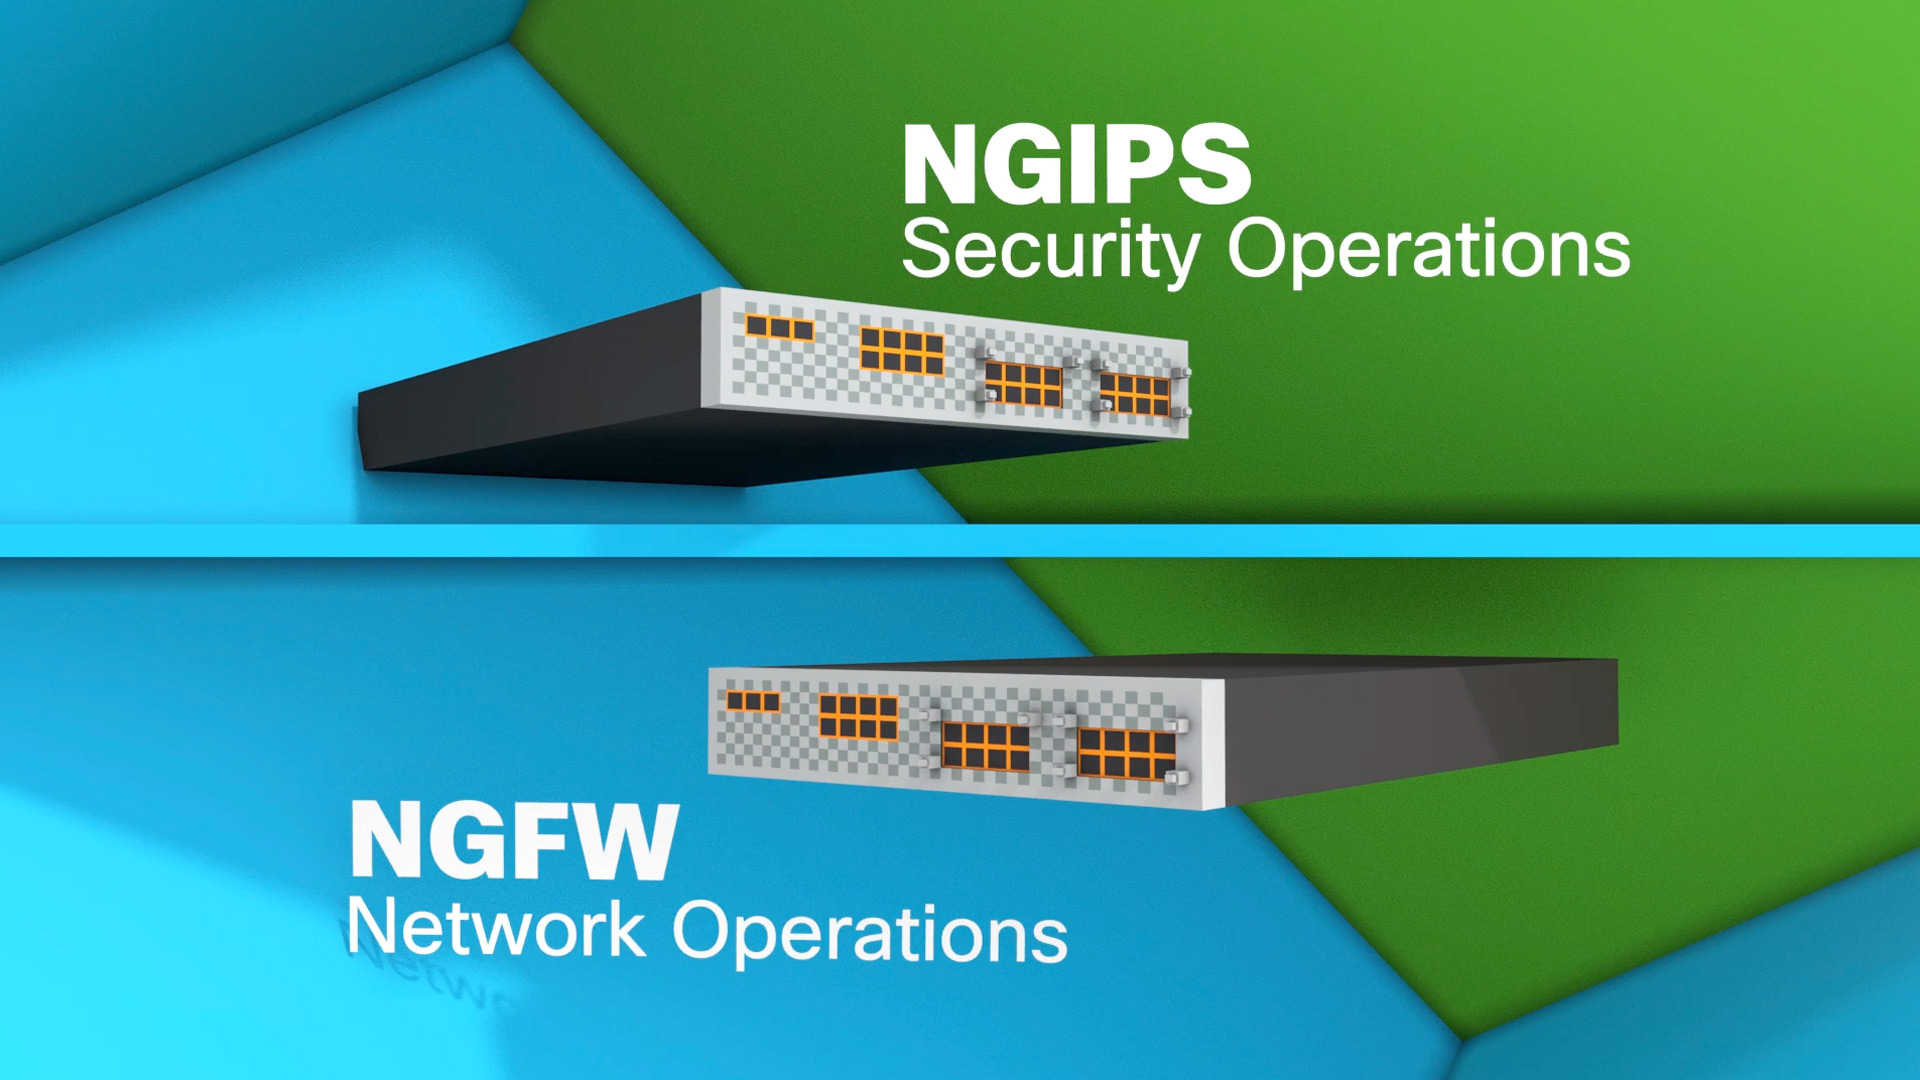 Cisco_NGIPS_TwoDevices